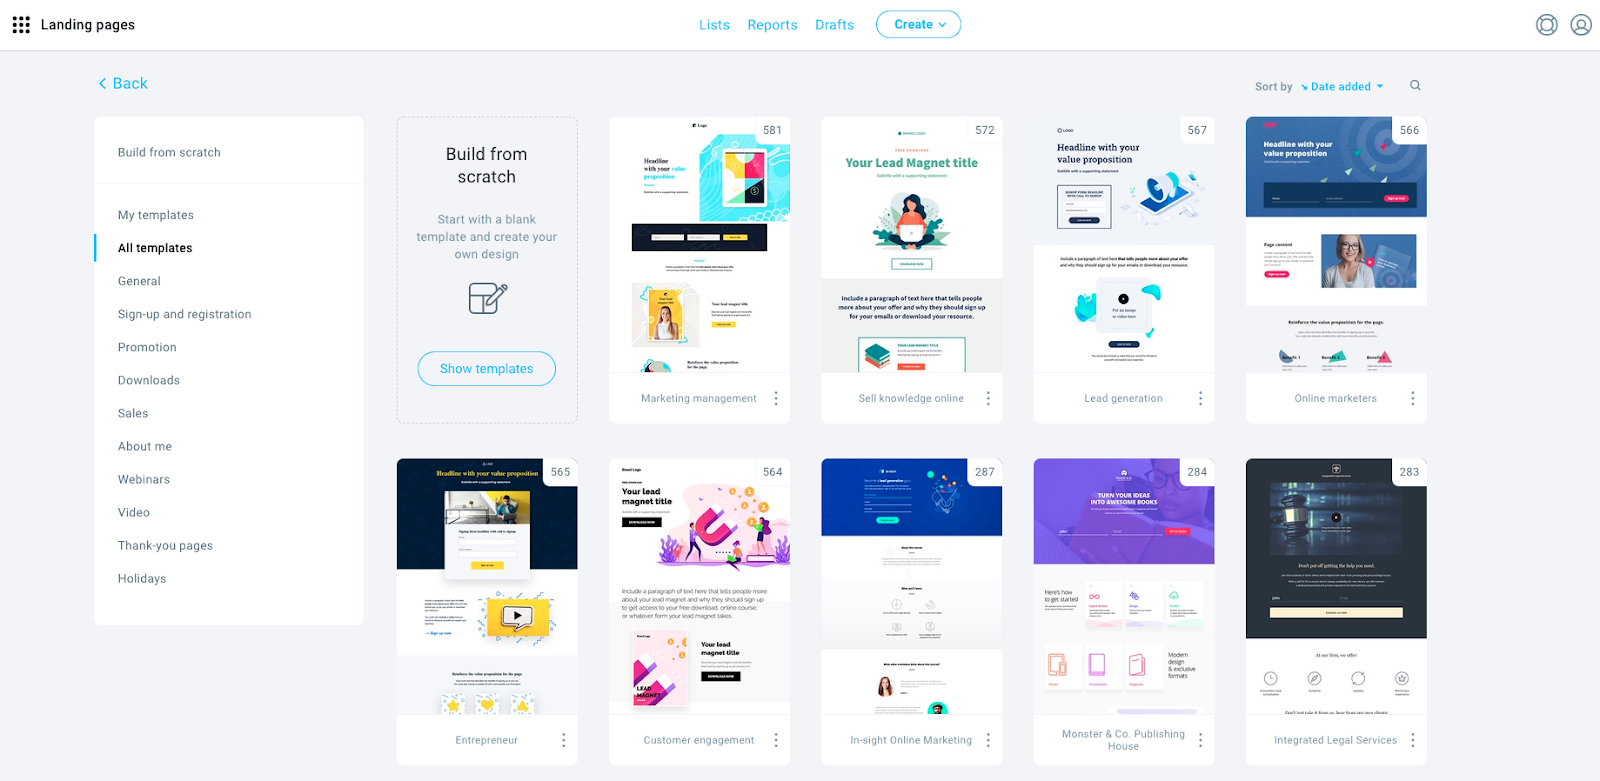 The landing page template library in GetResponse.